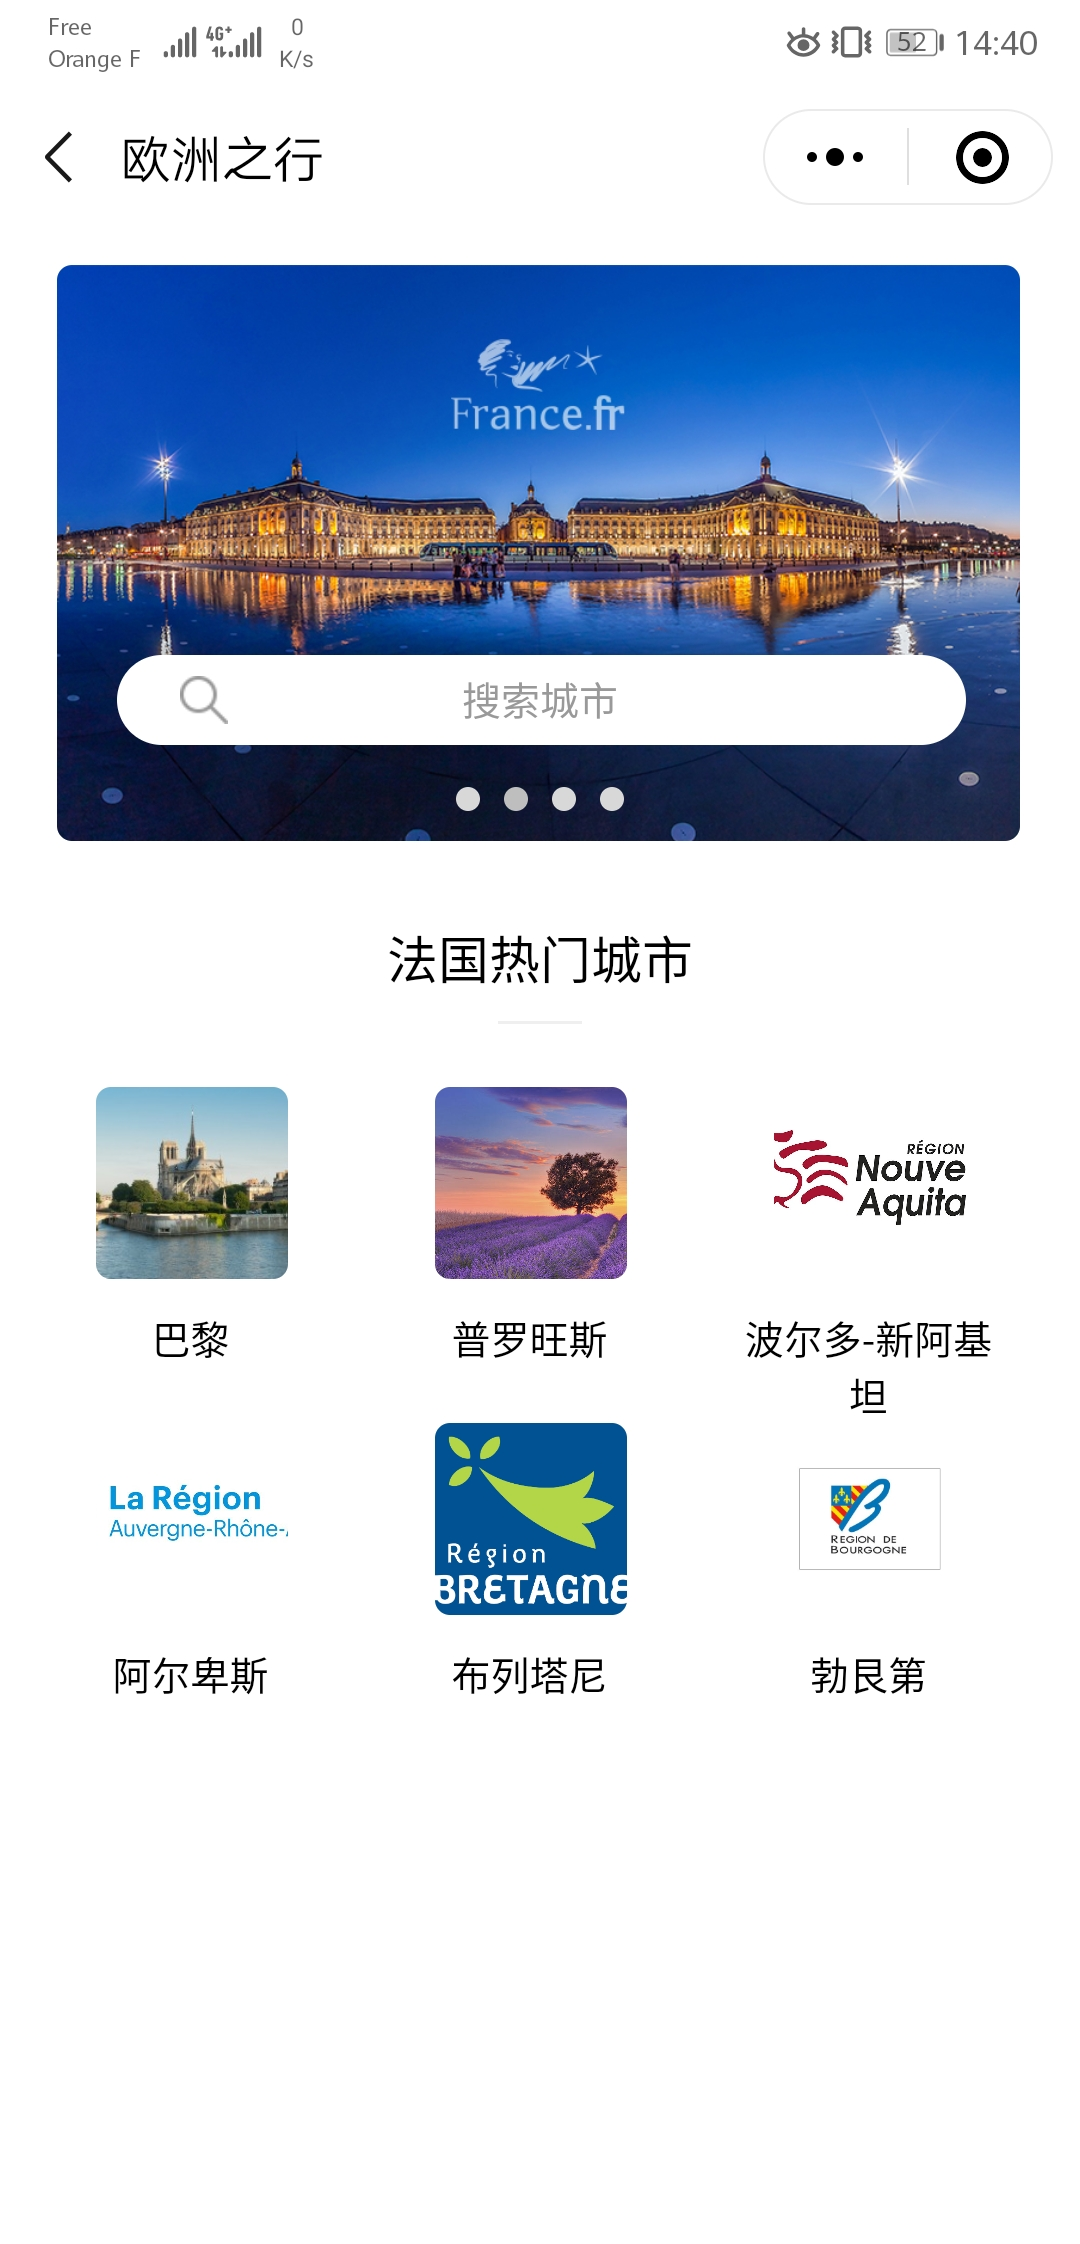 WeChat Mini-Program France Experience - EuroPass